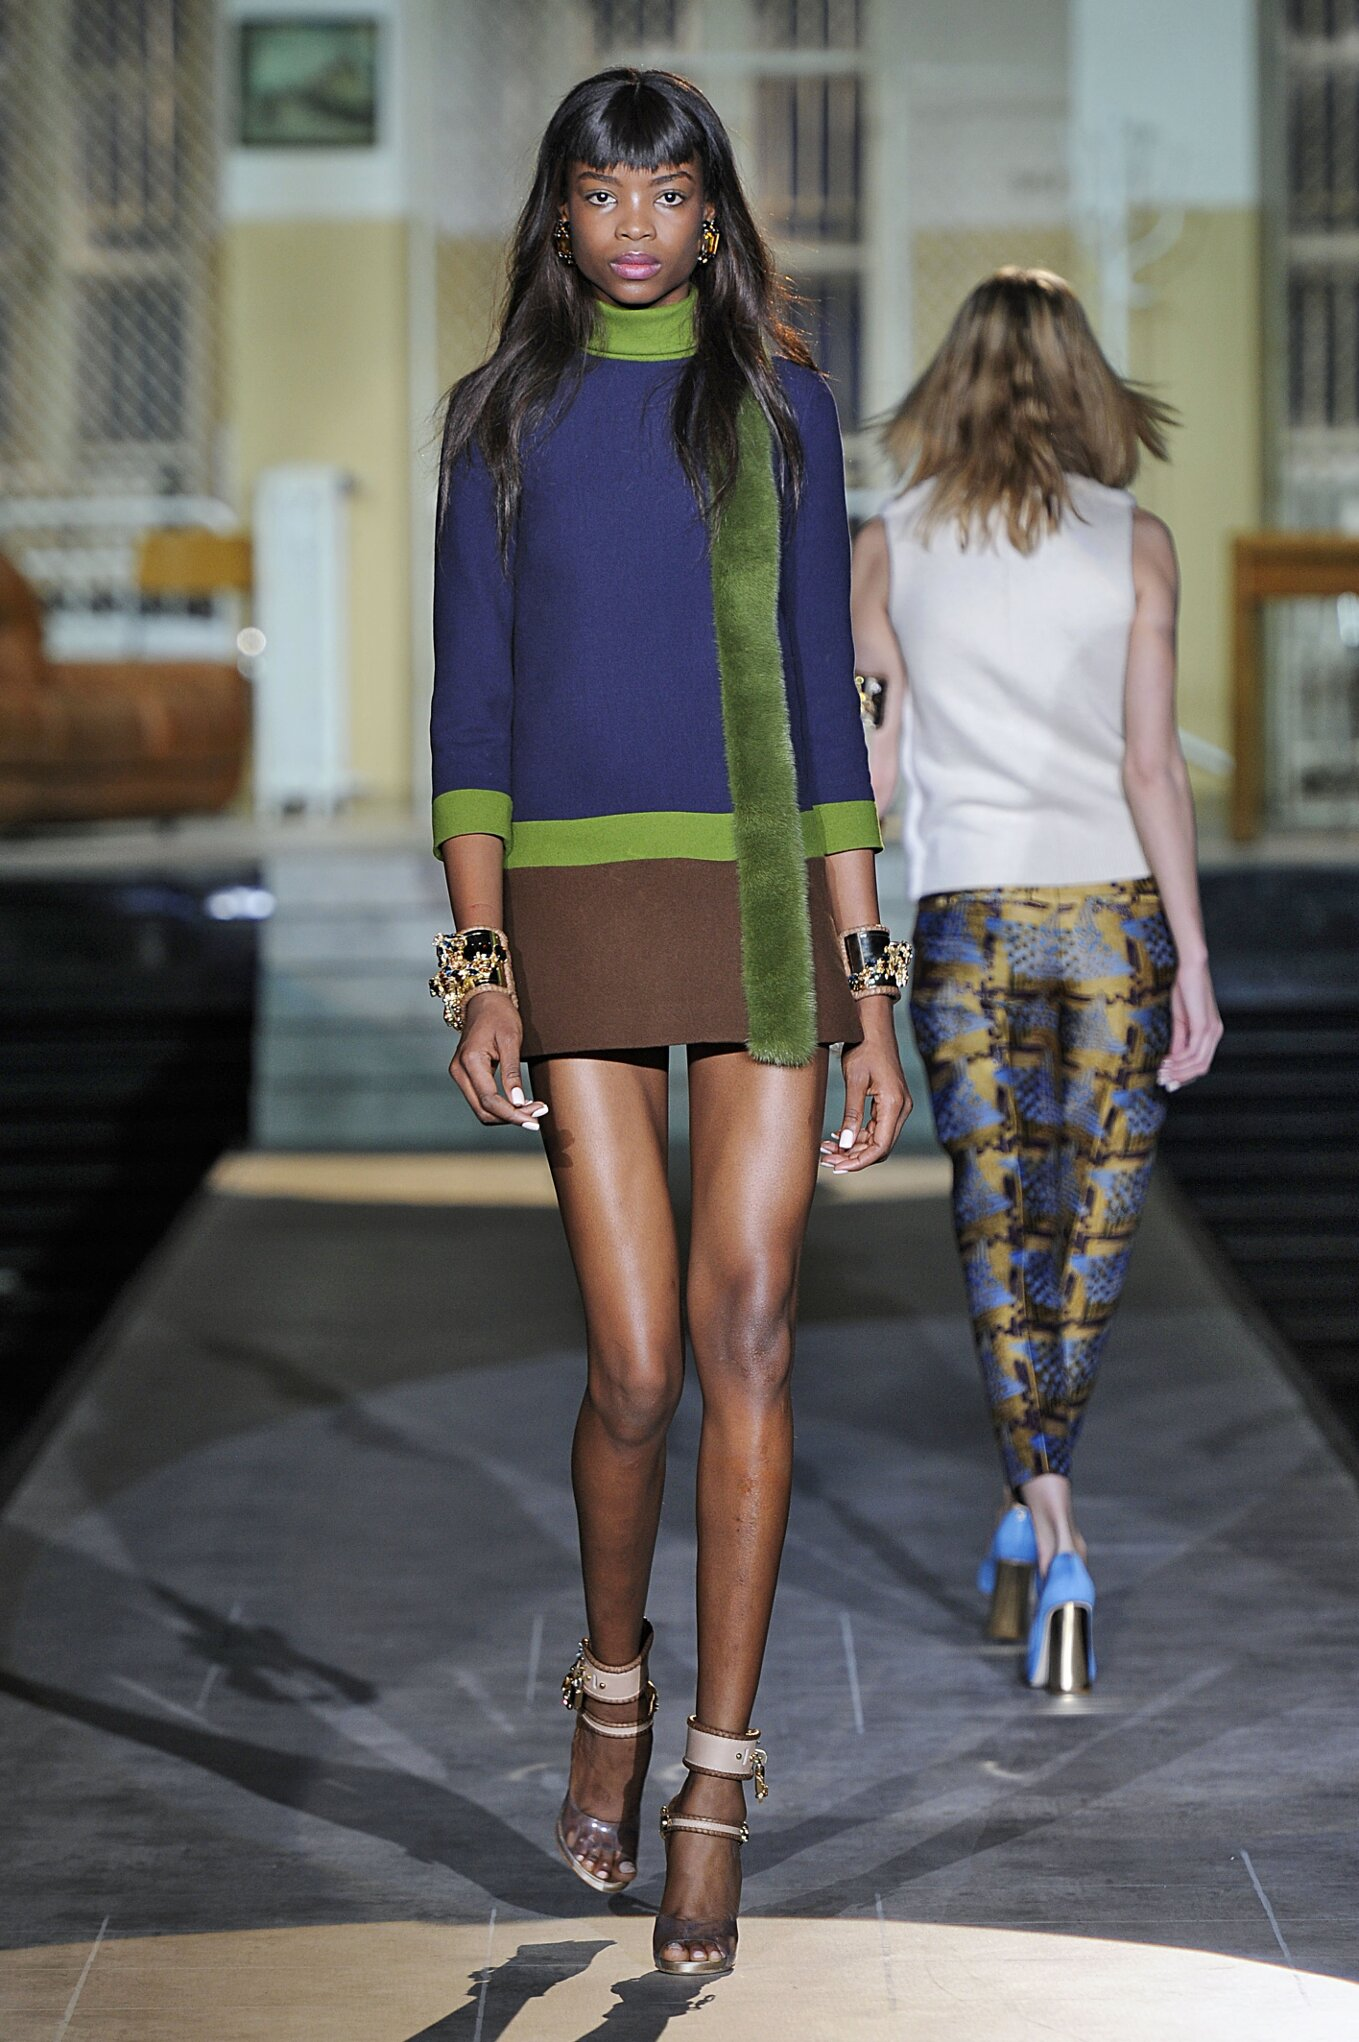 DSQUARED2 FALL WINTER 2014 15 WOMENS COLLECTION The